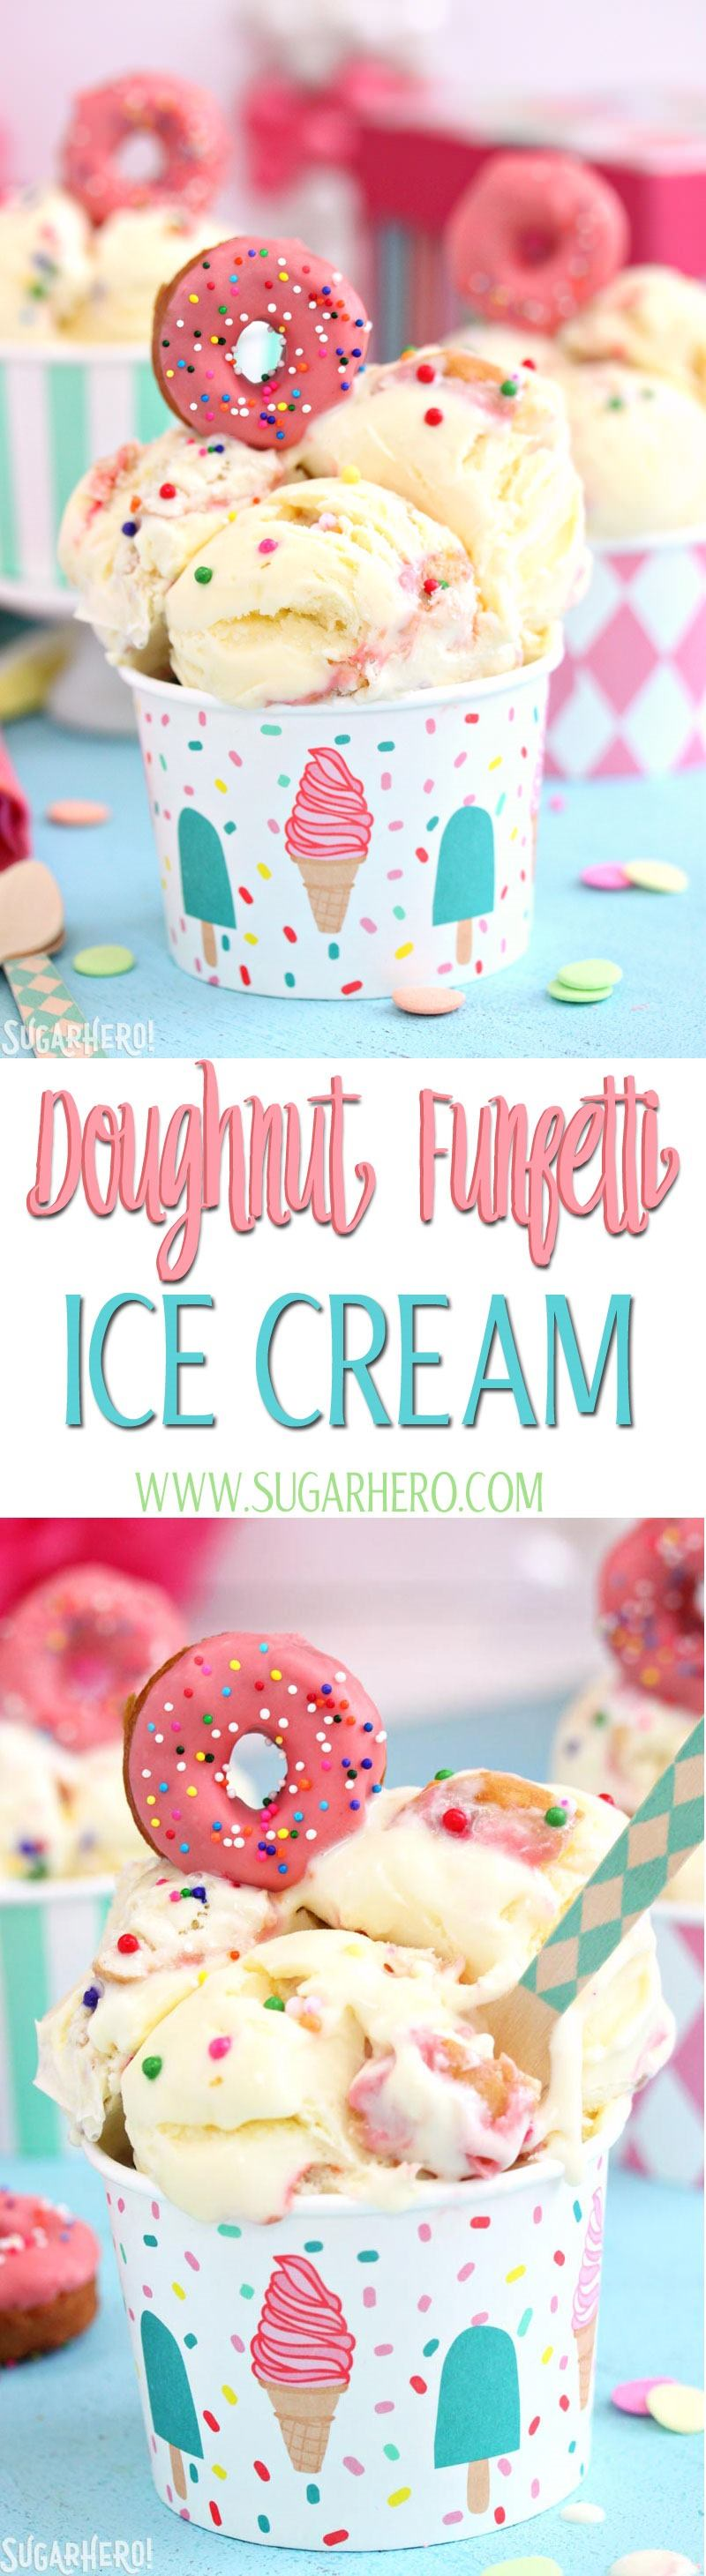 Doughnut Funfetti Ice Cream | From SugarHero.com